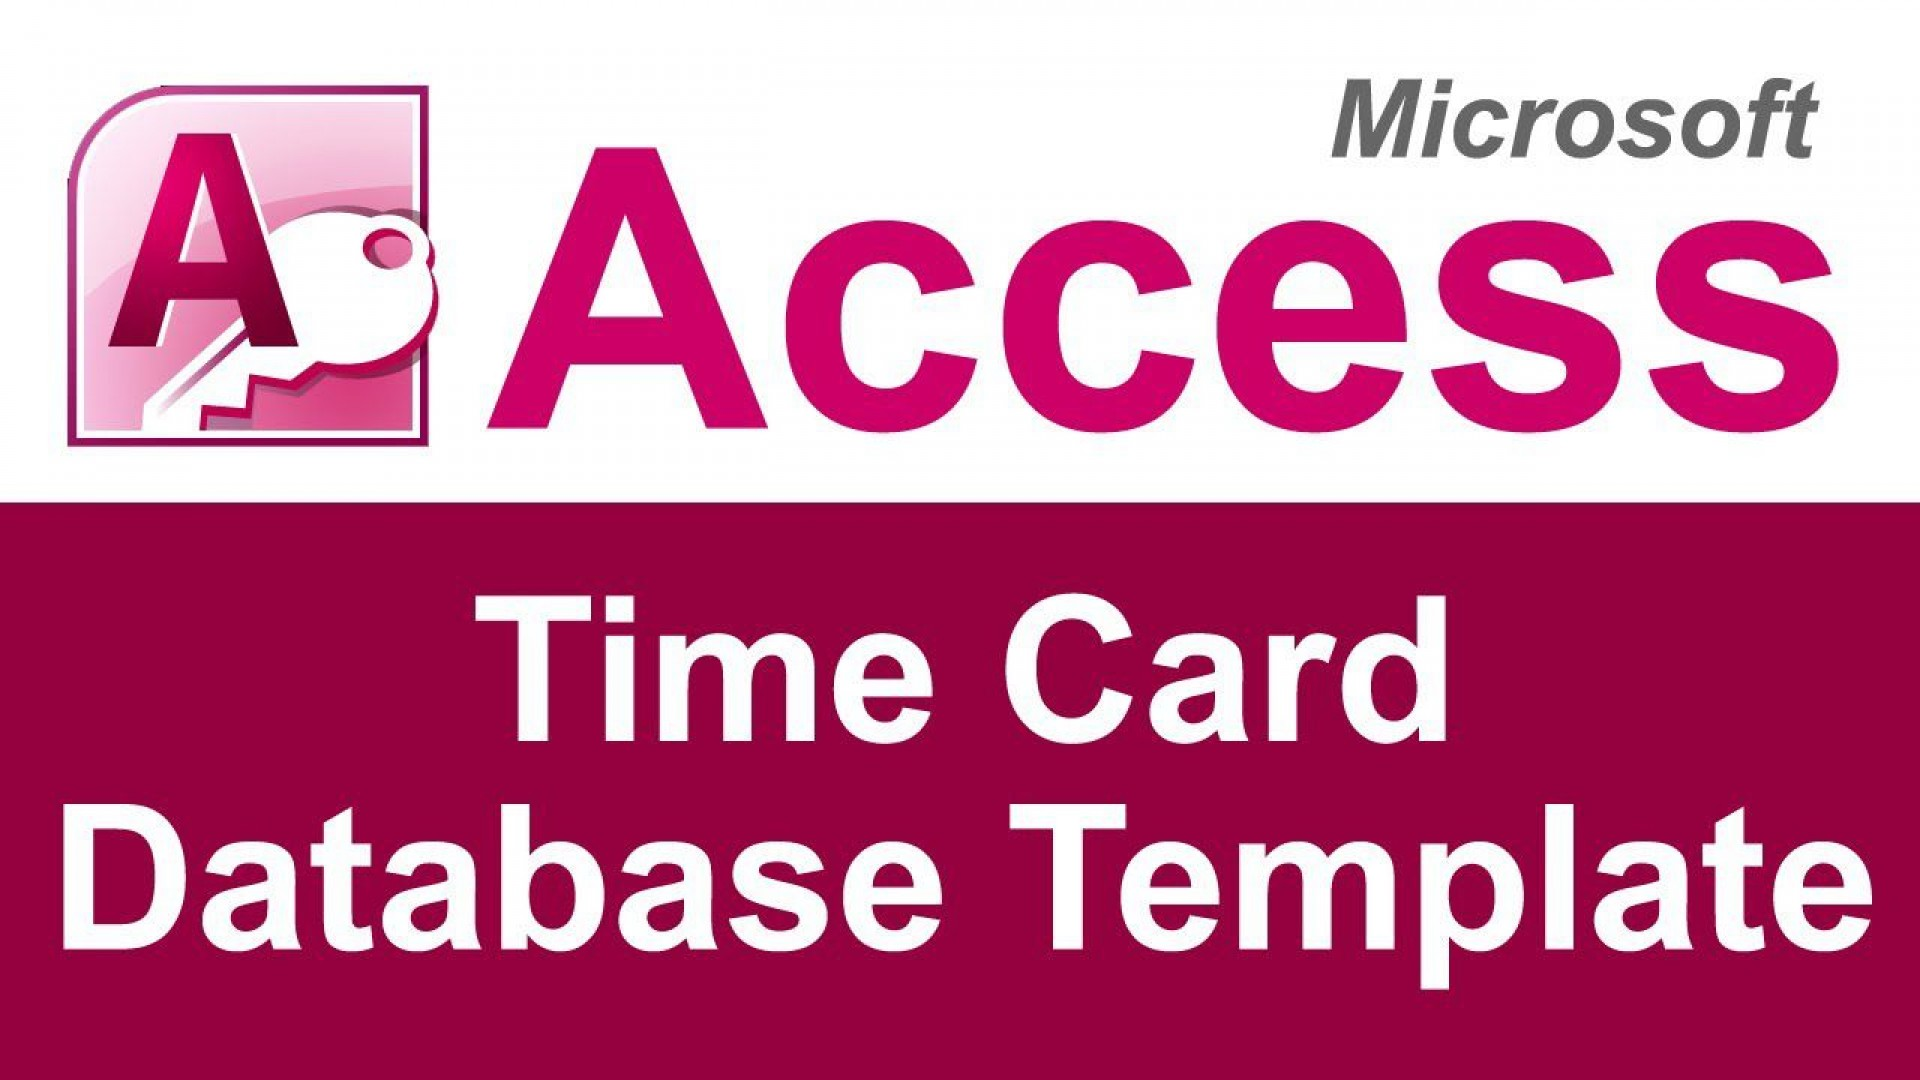 002 Staggering Microsoft Acces Employee Time Card Template Highest Quality 1920